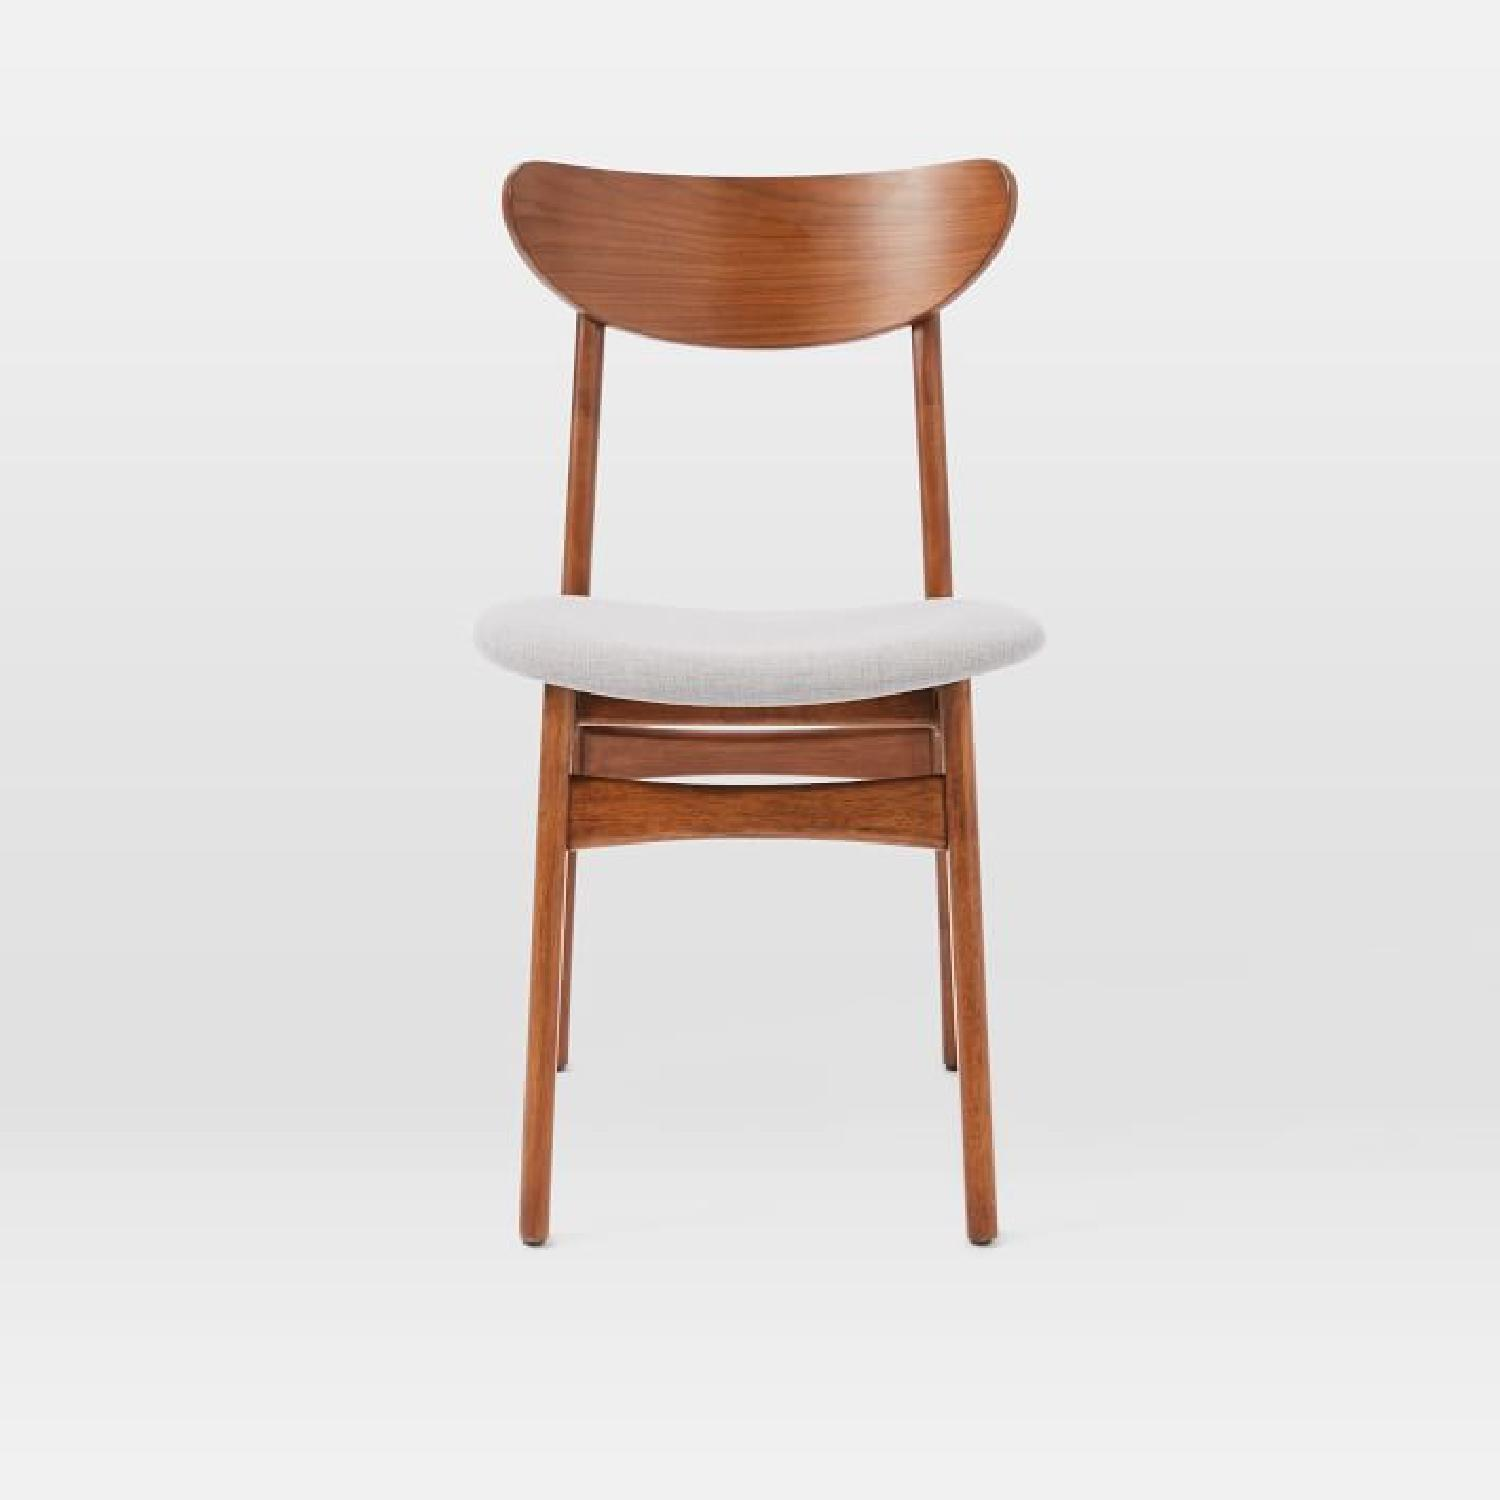 West Elm Classic Cafe Dining Chair(s) - image-8